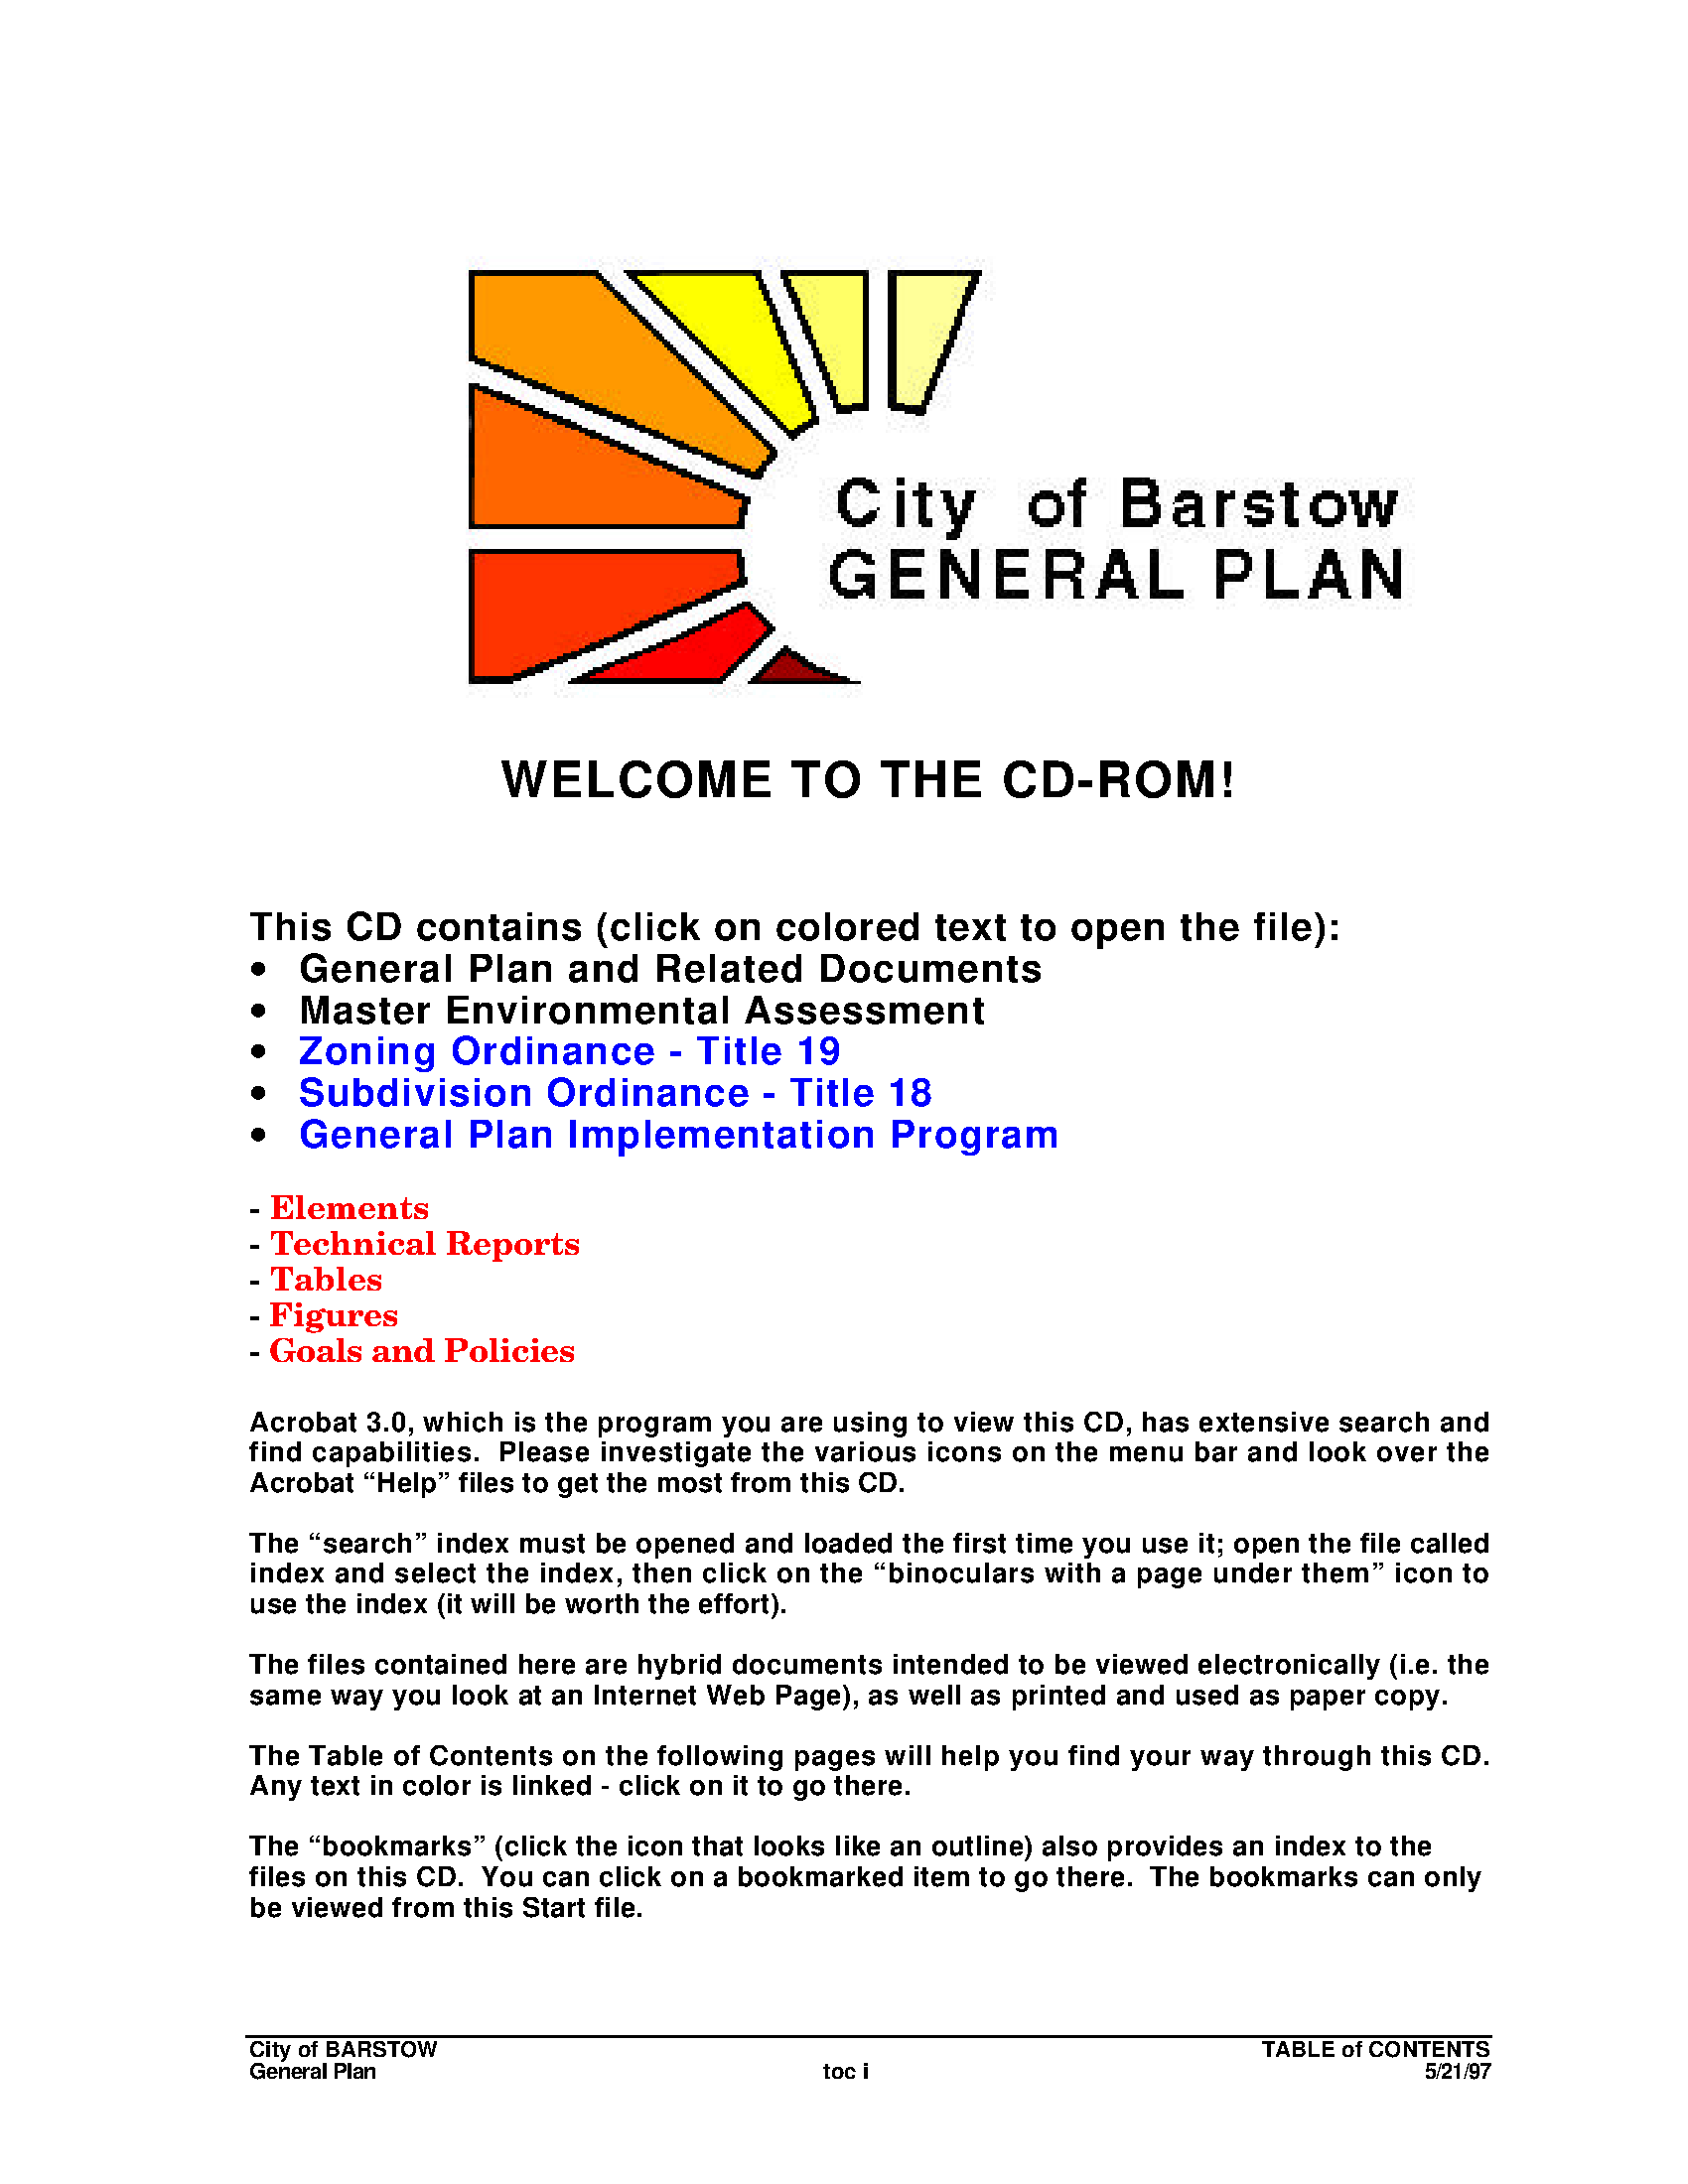 City of Barstow general plan - California Local Planning